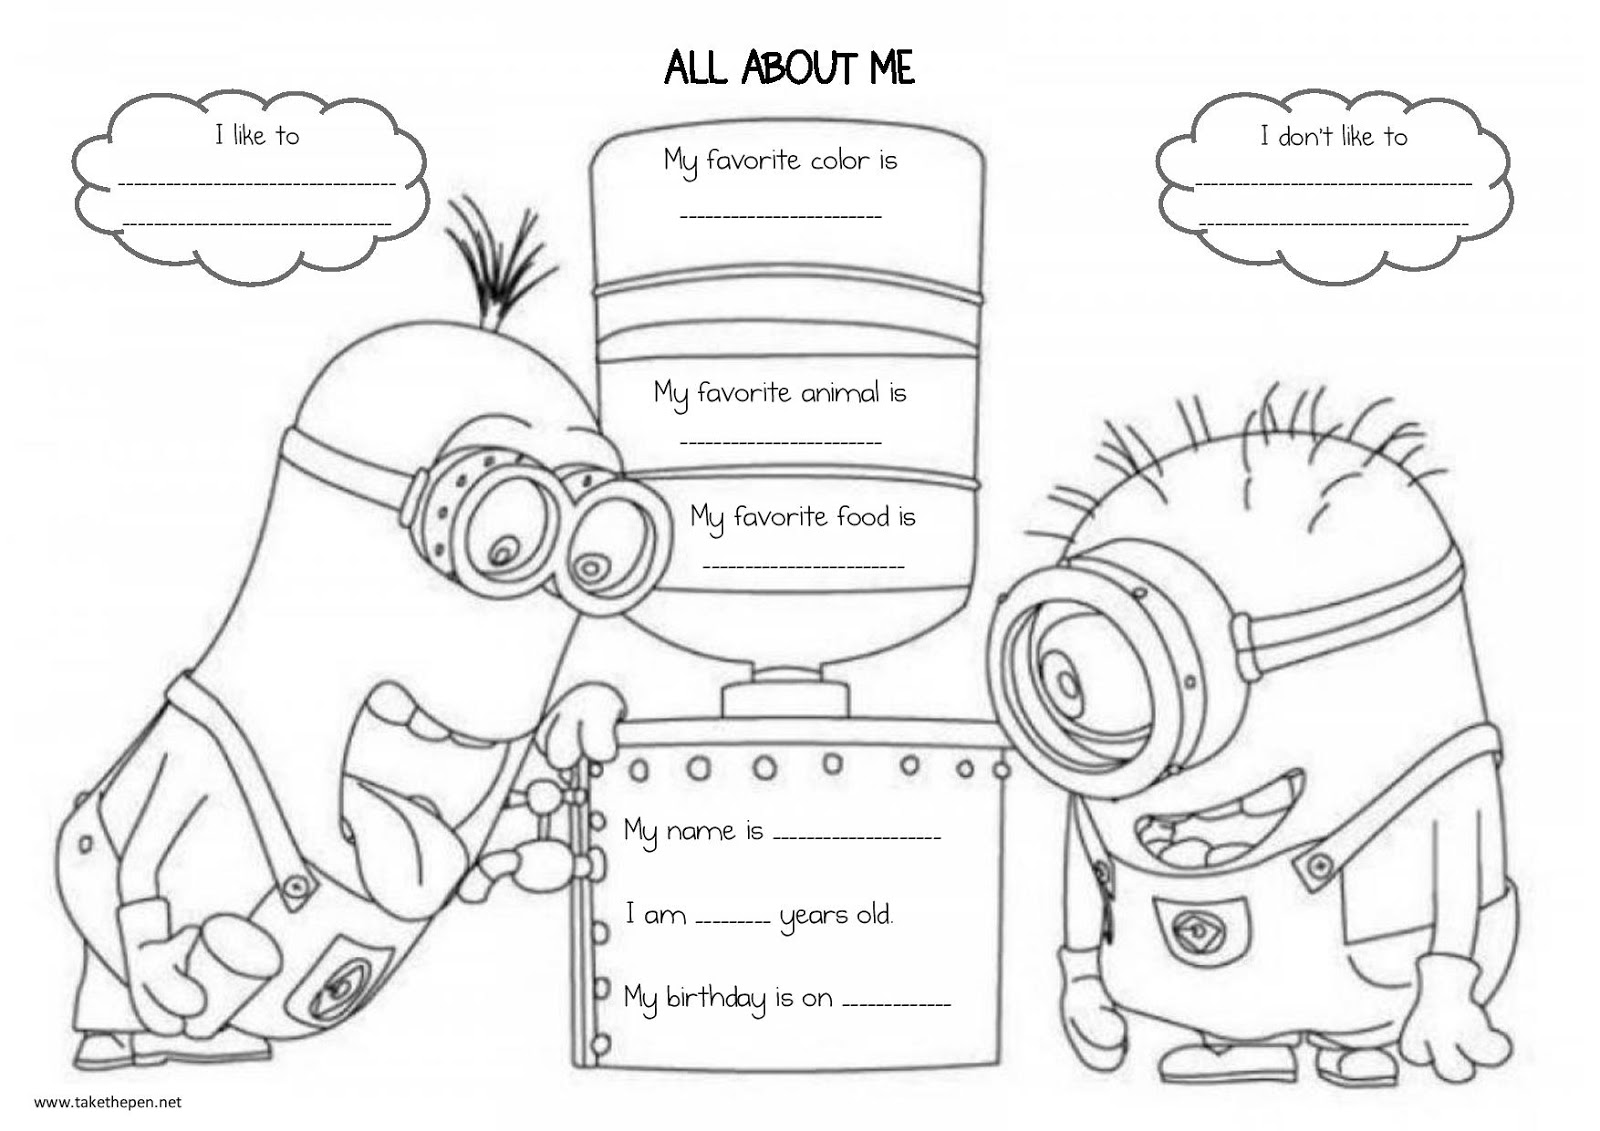 Massif image for all about me printable worksheet